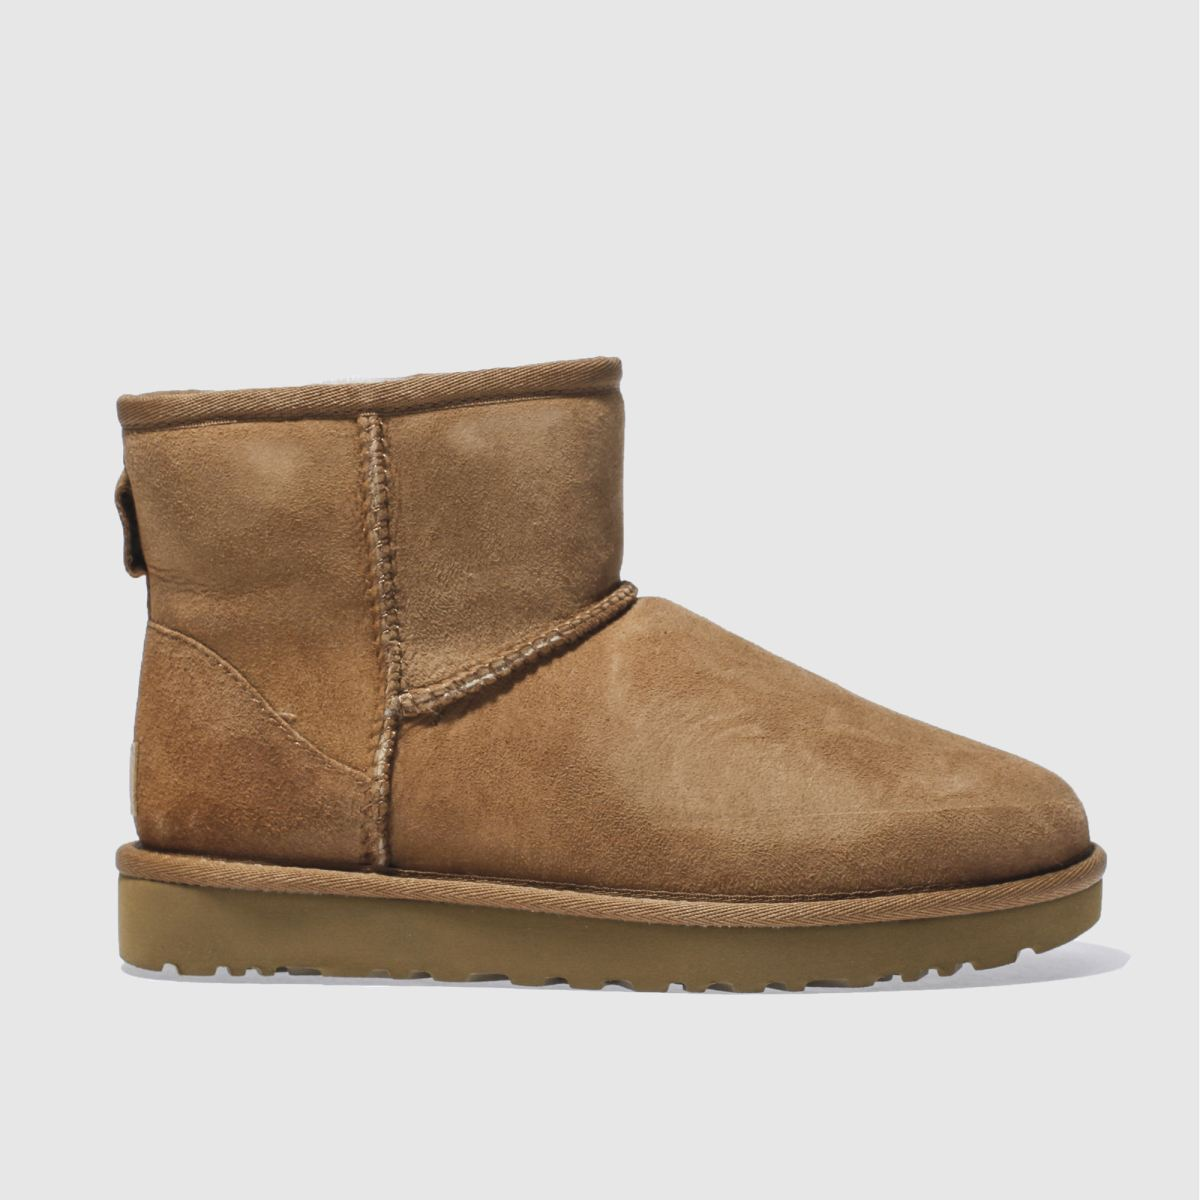 The UGG brand defines casual wear and has been doing it since they were founded in California in the early 80s. Now known for the classic-style boots, UGGs were originally made for men and boys.